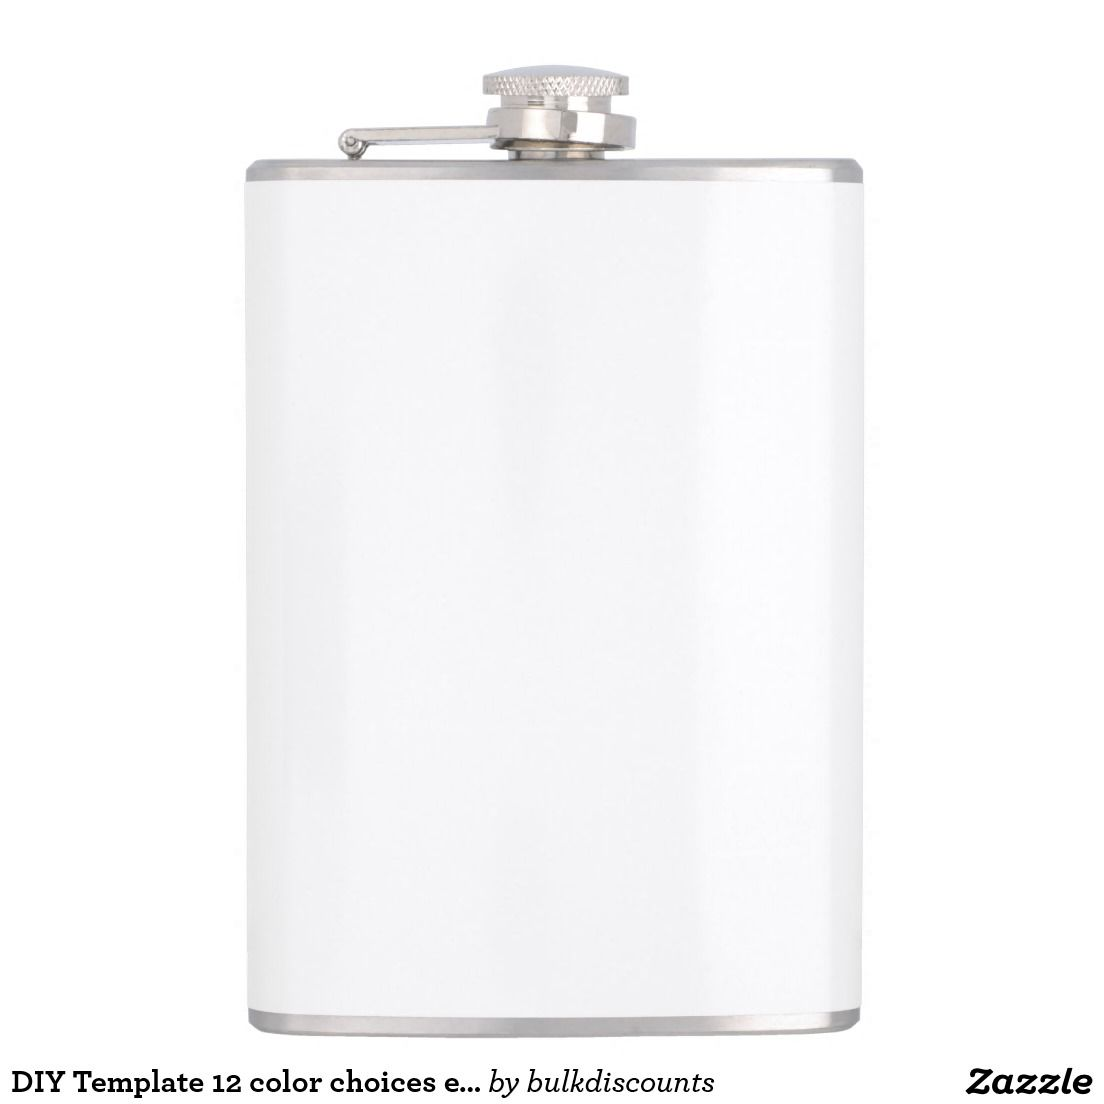 Diy Template 12 Color Choices Easily Add Photo Txt Hip Flask Diy Template Stationery Supplies Flask